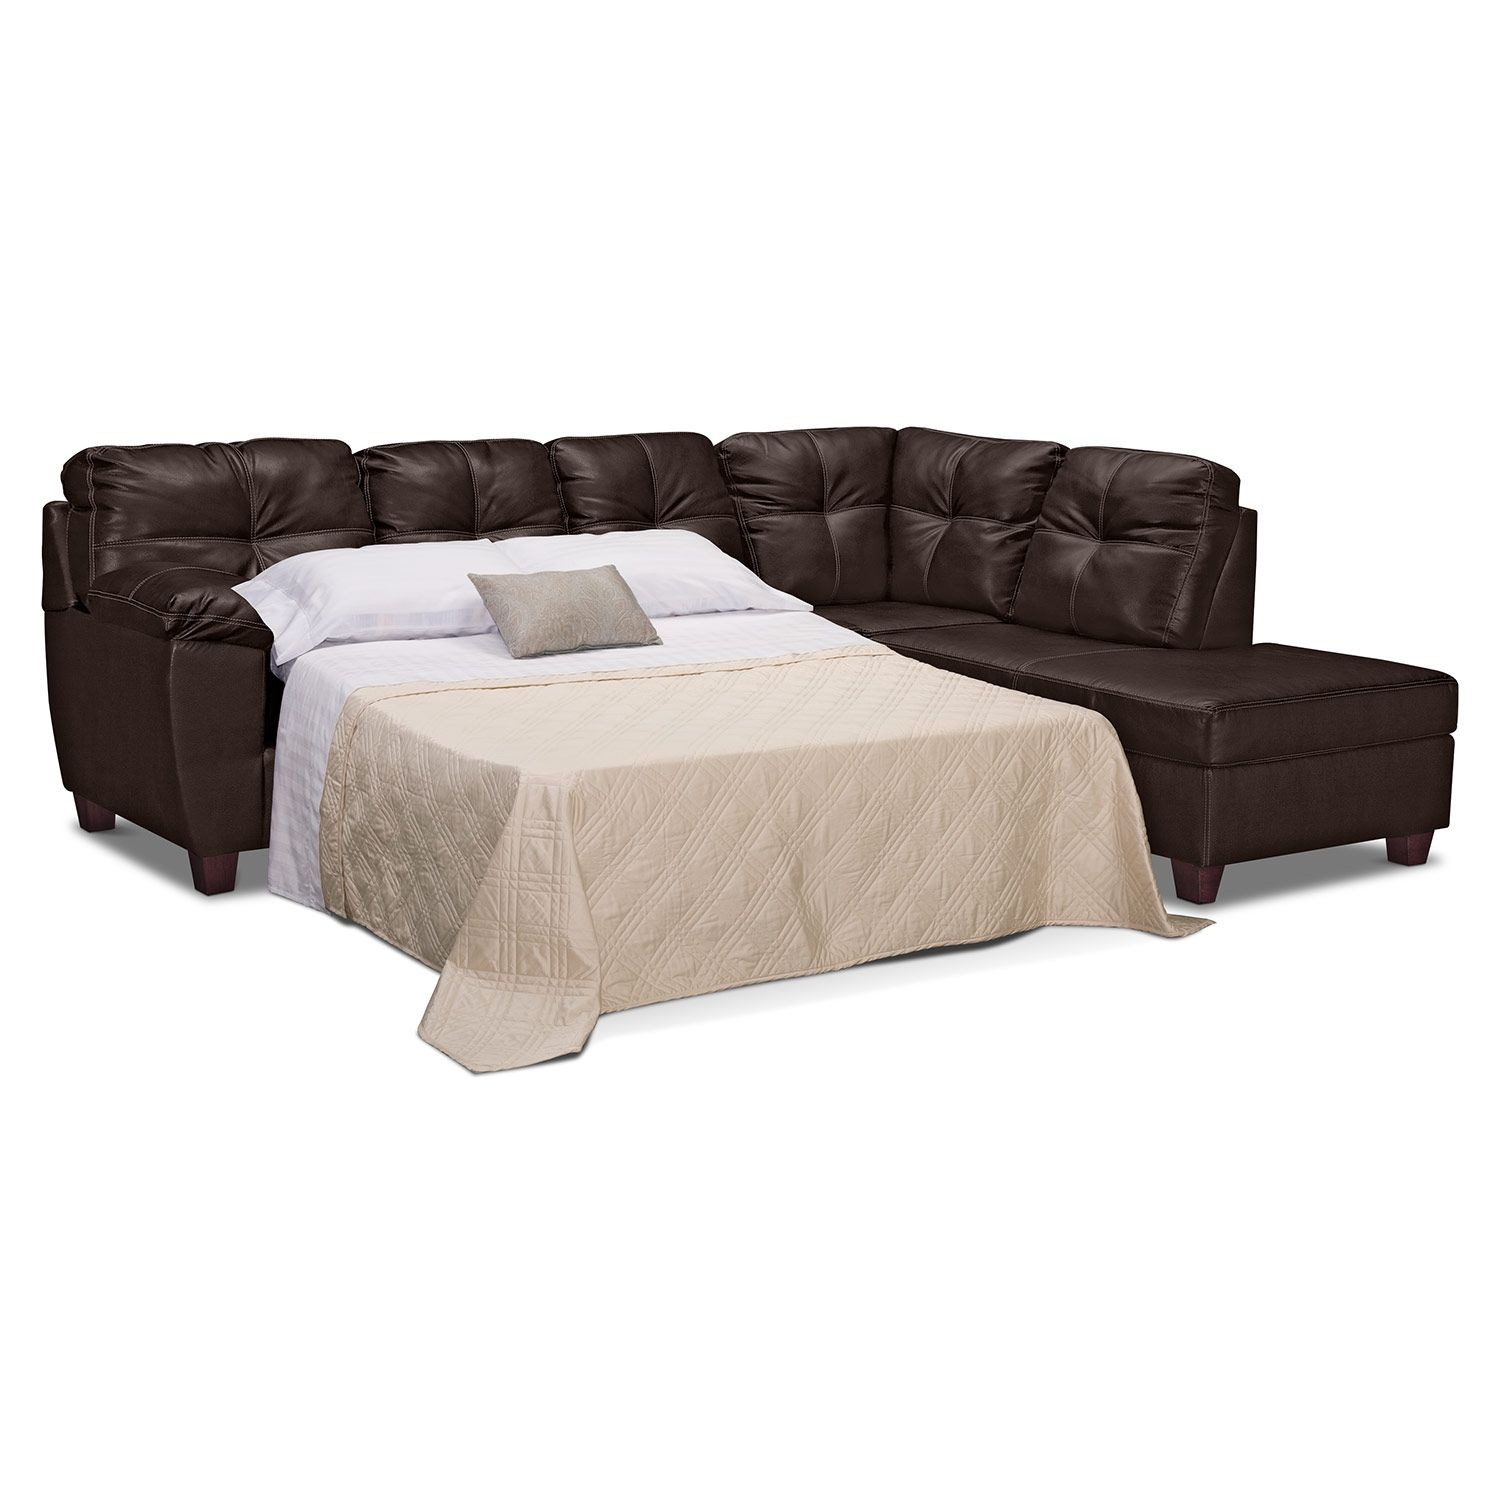 Rialto Sofa Bed Andre High Fashion Home Sectional Couch Review Co